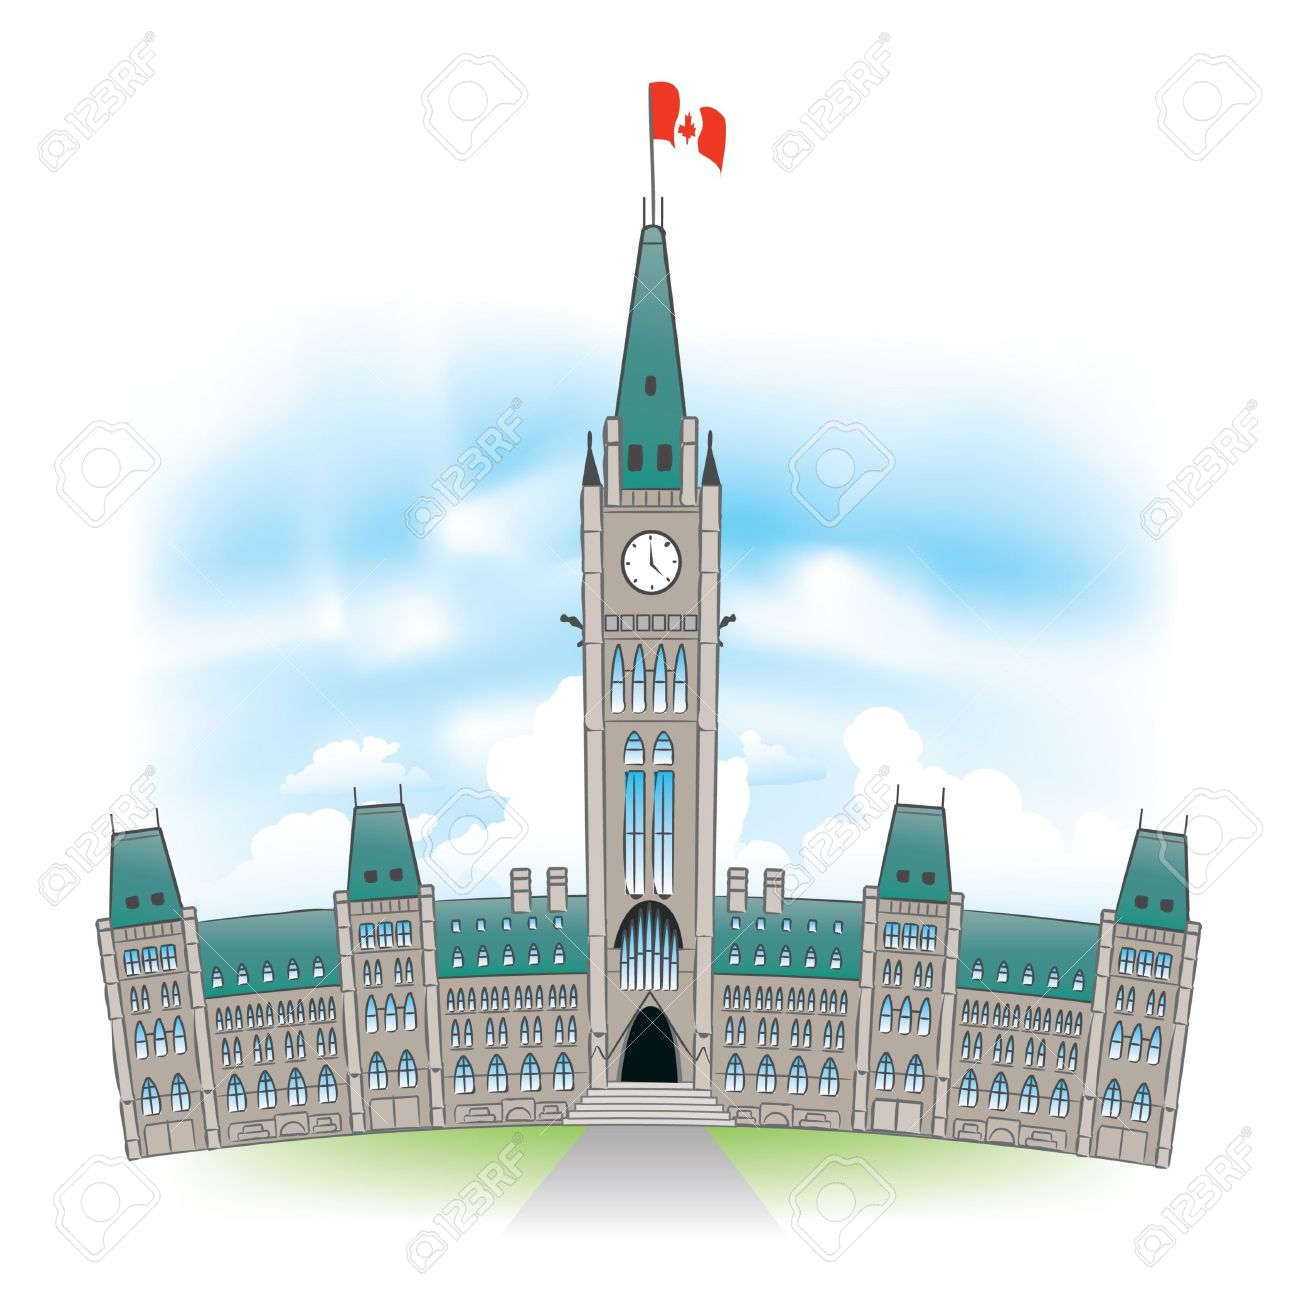 Canadian Government Clipart.